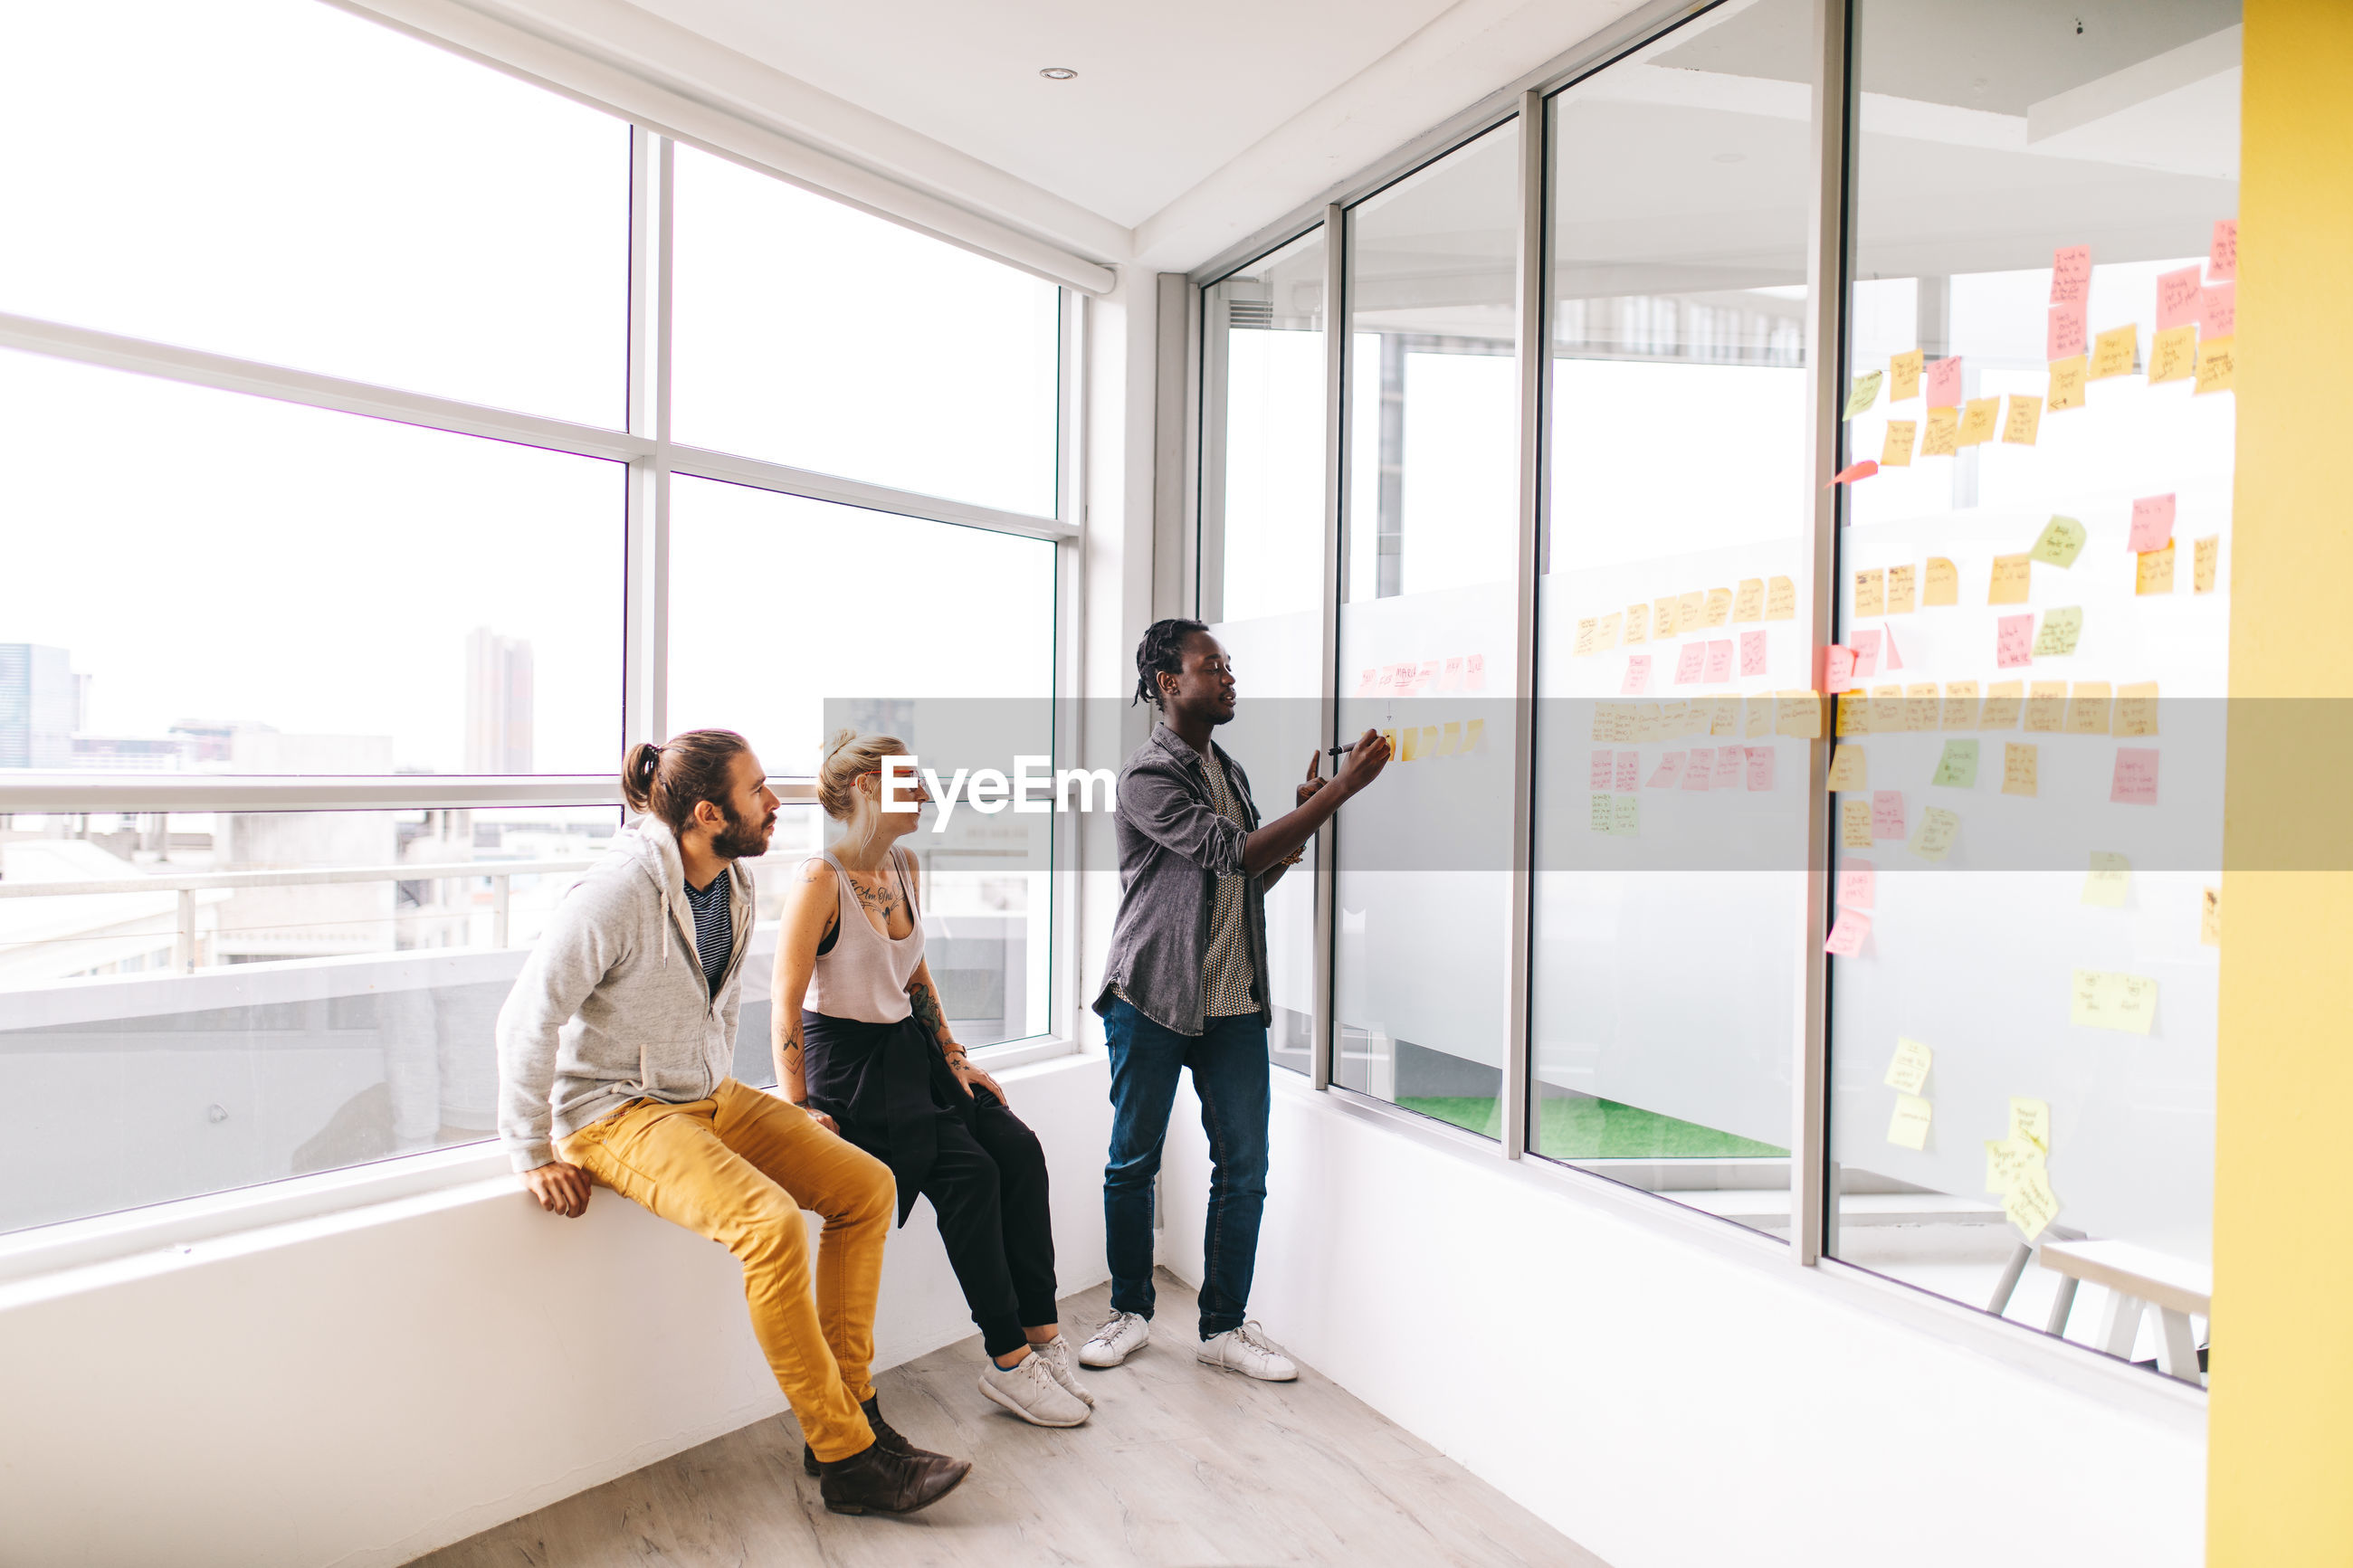 Colleagues looking at businessman writing on adhesive notes over window in office